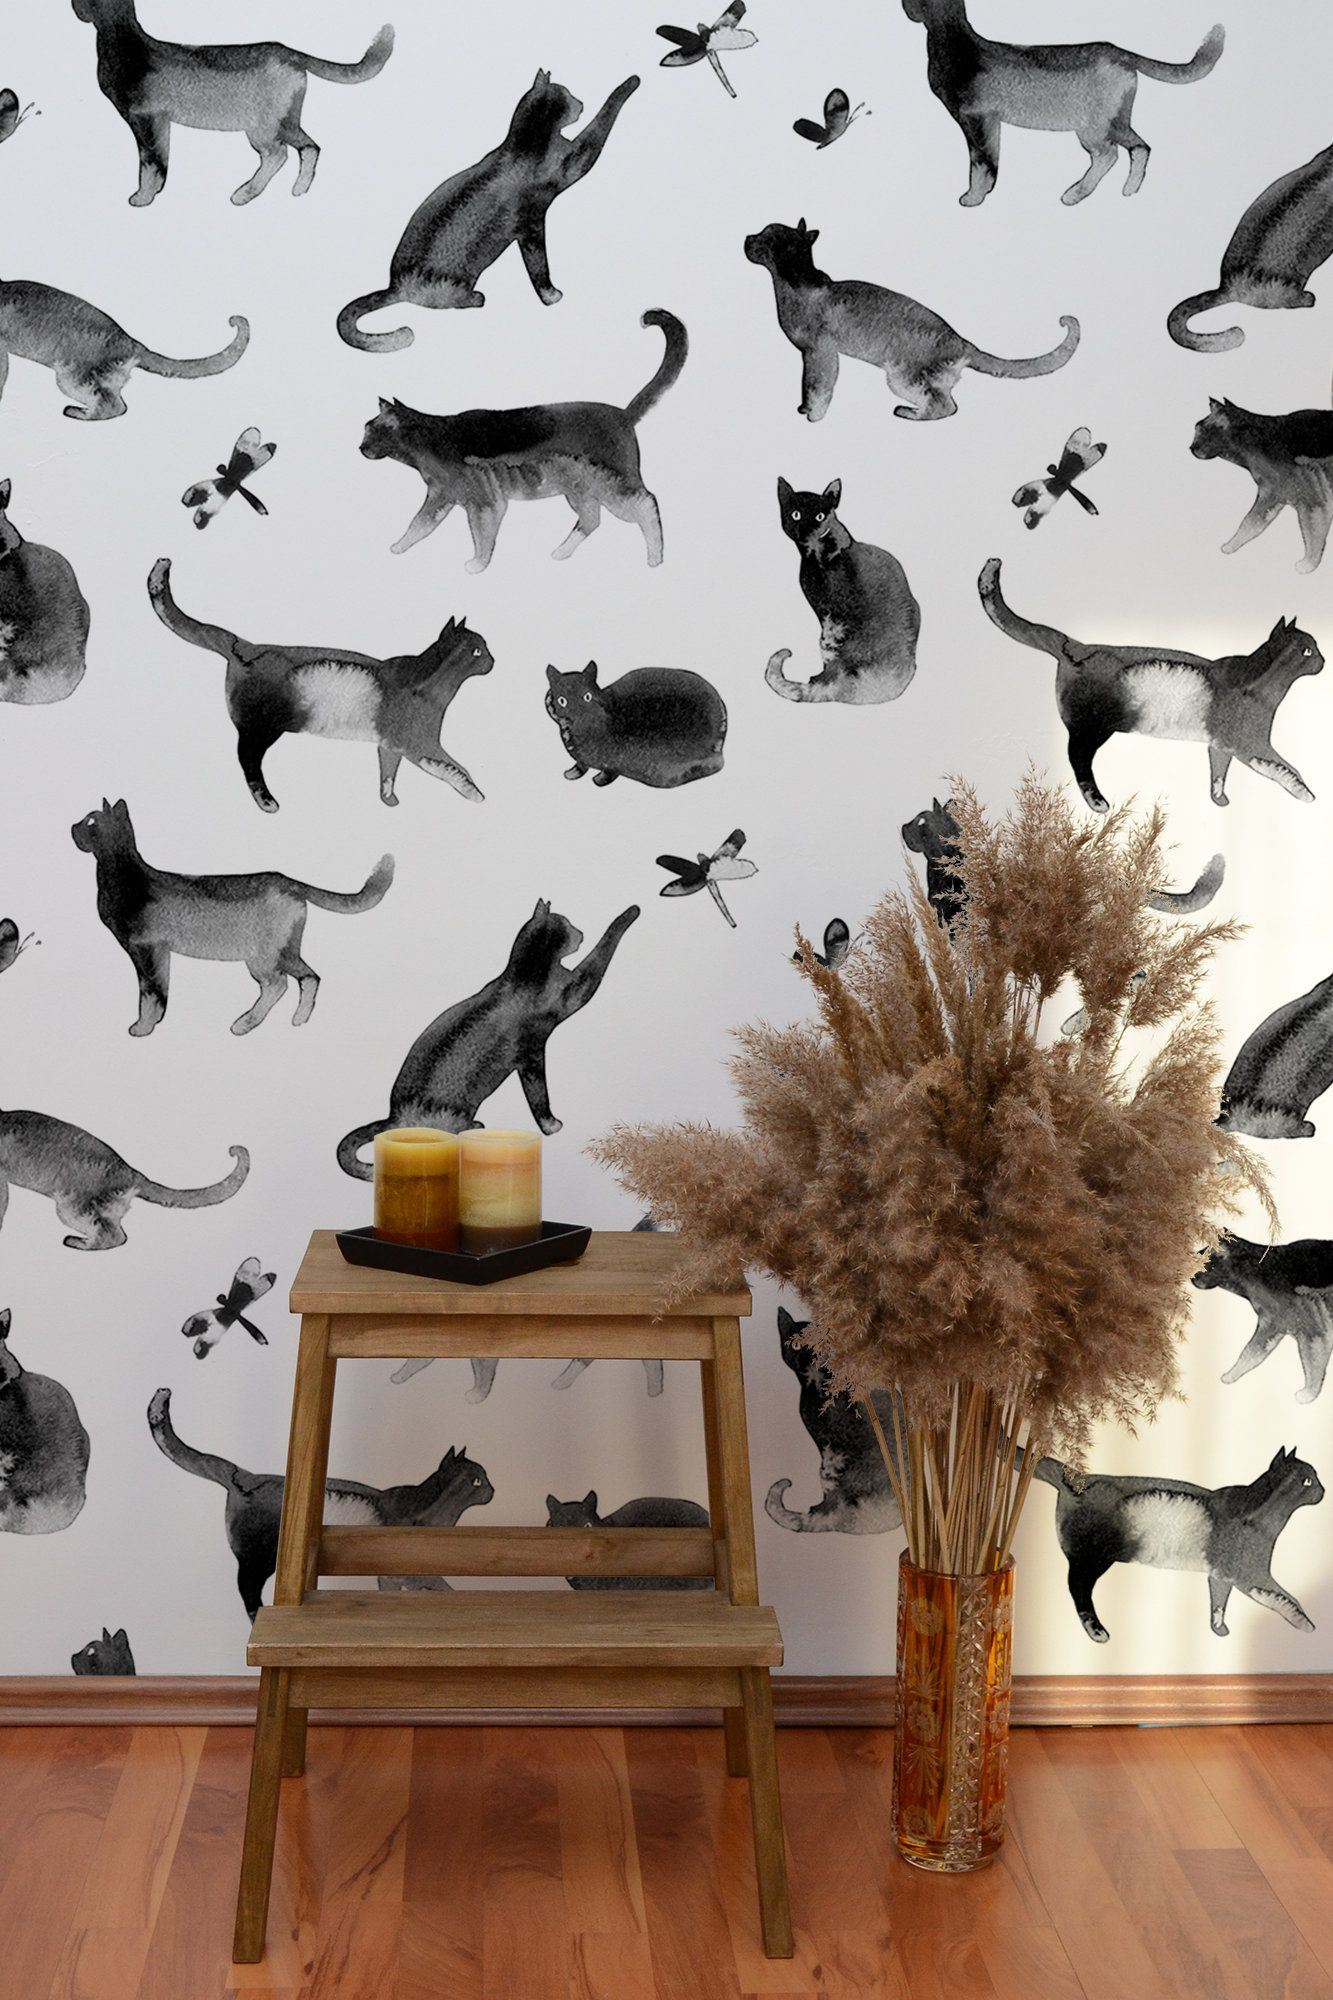 Cat Watercolor Wallpaper Peel And Stick Wall Mural Removable Etsy Watercolor Wallpaper Wallpaper Black And White Wallpaper